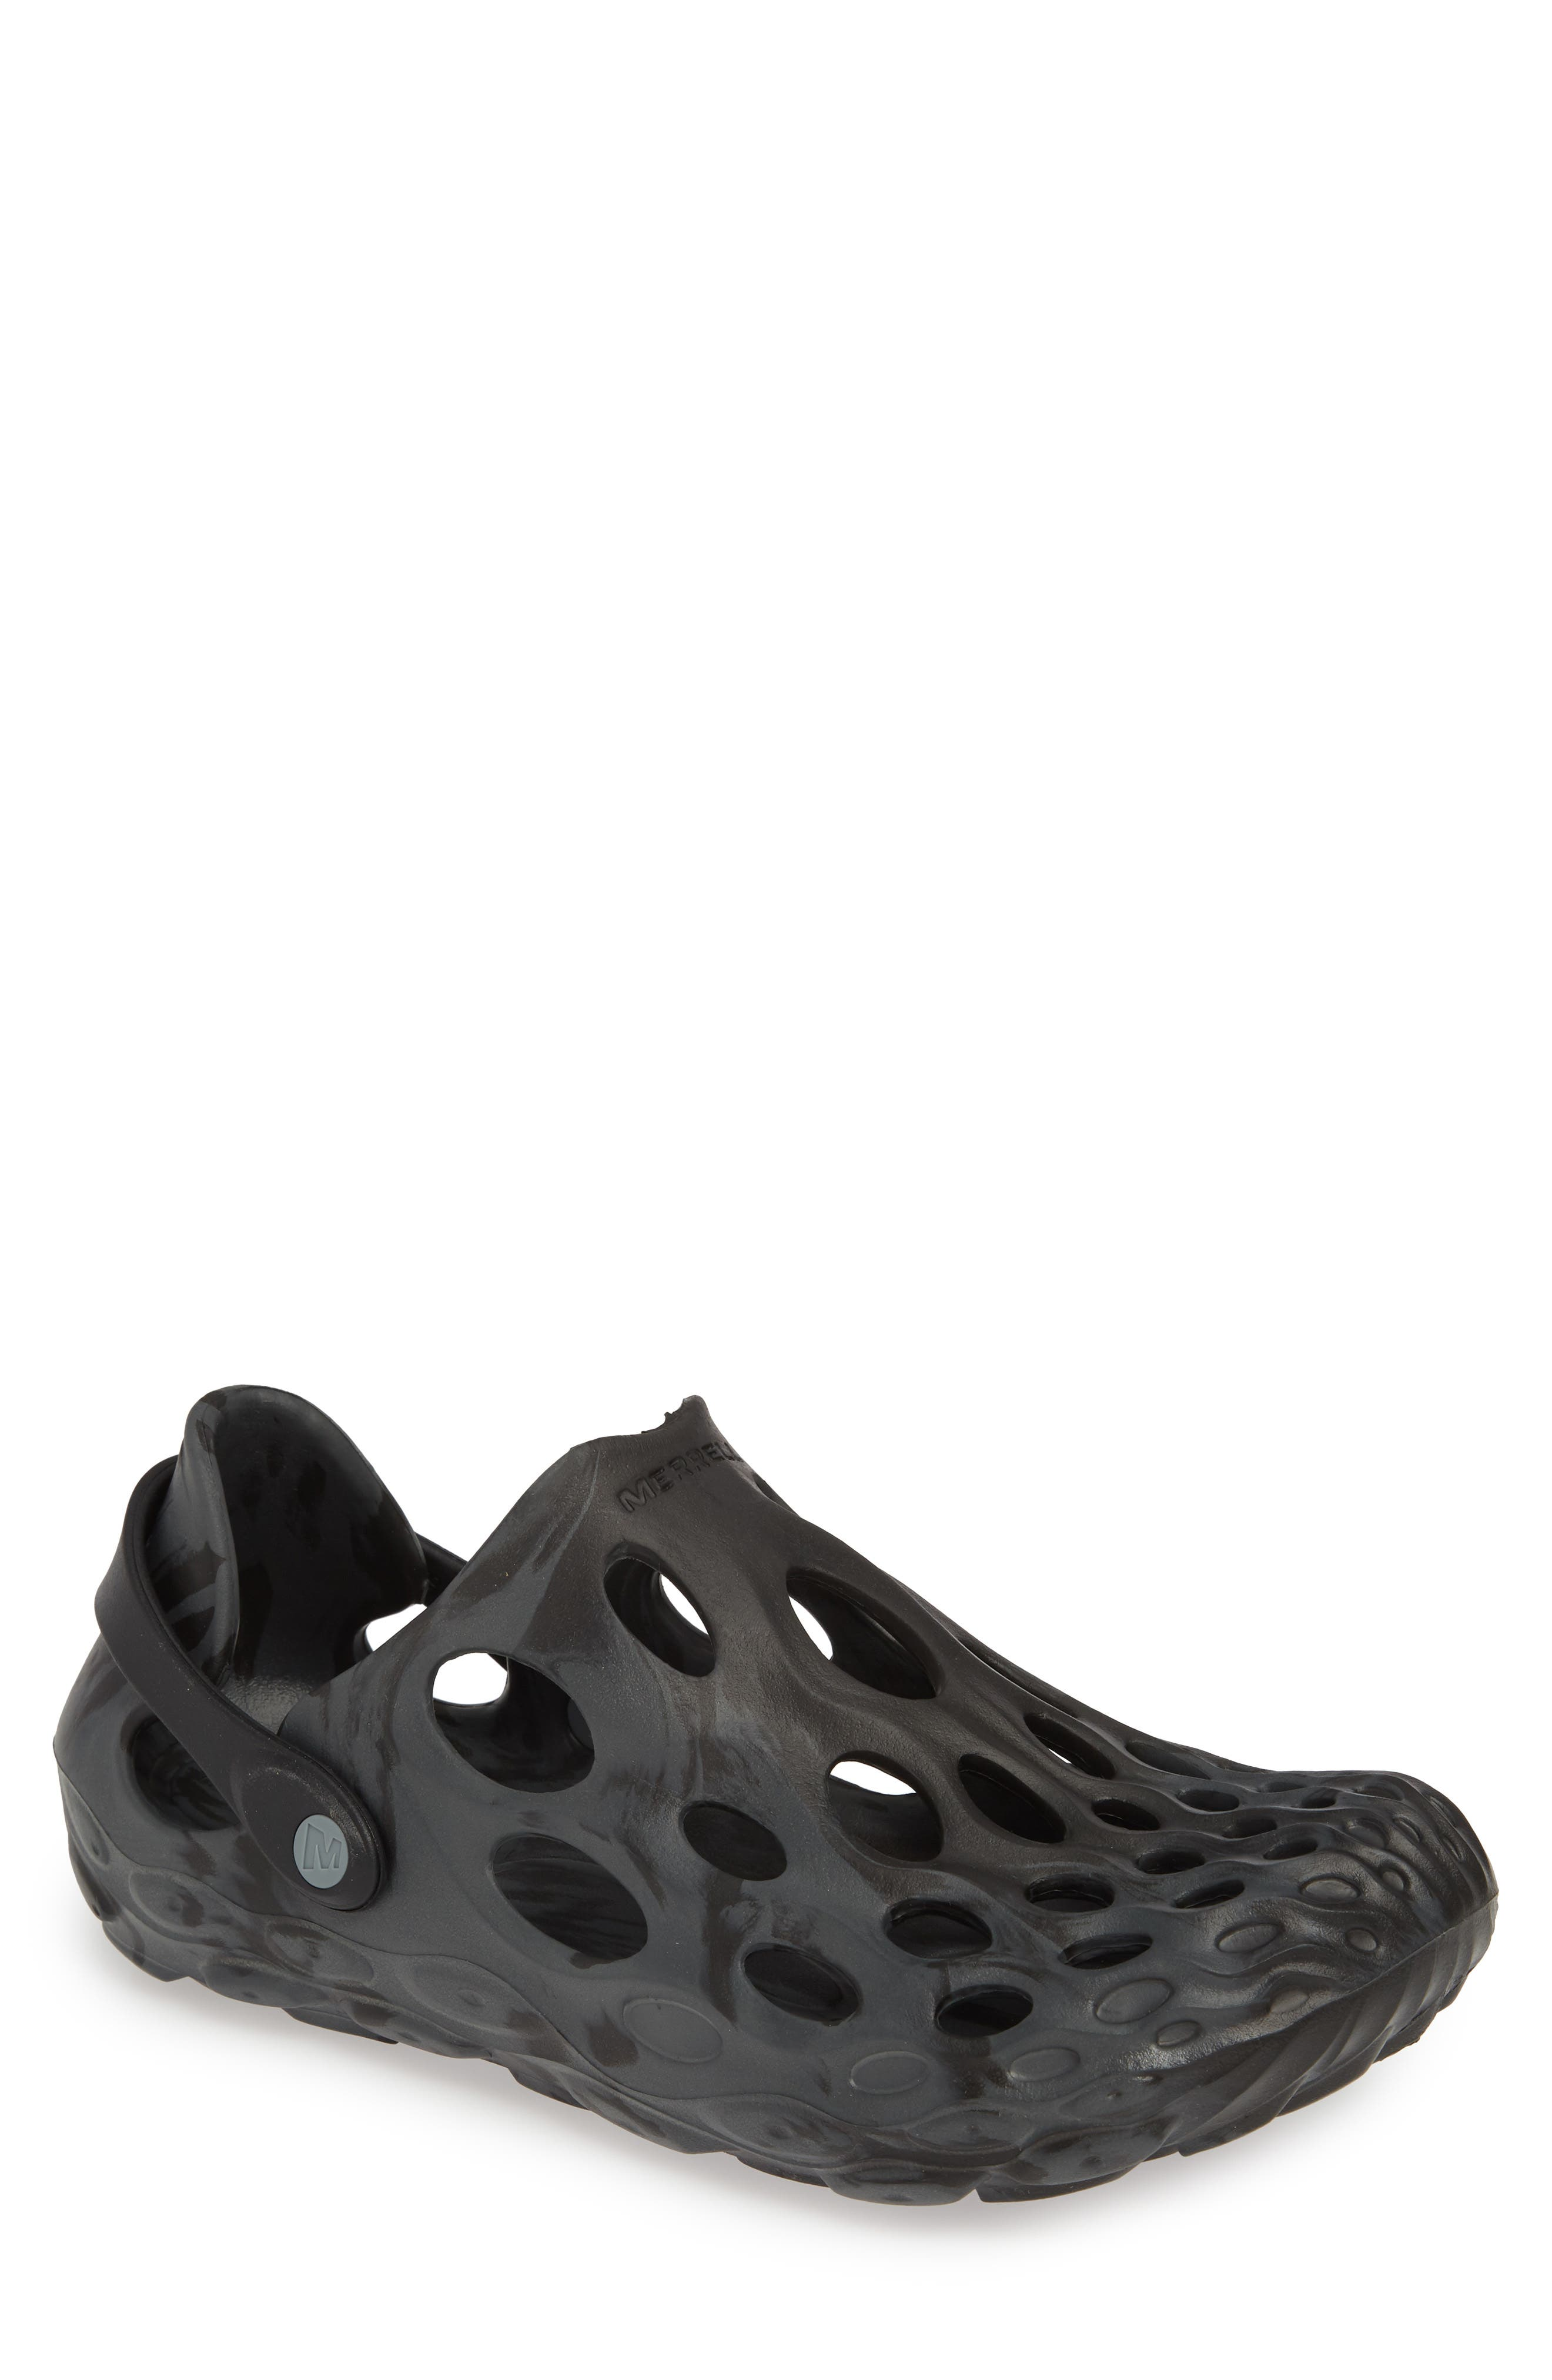 MERRELL Hydro Moc Water Friendly Clog, Main, color, BLACK